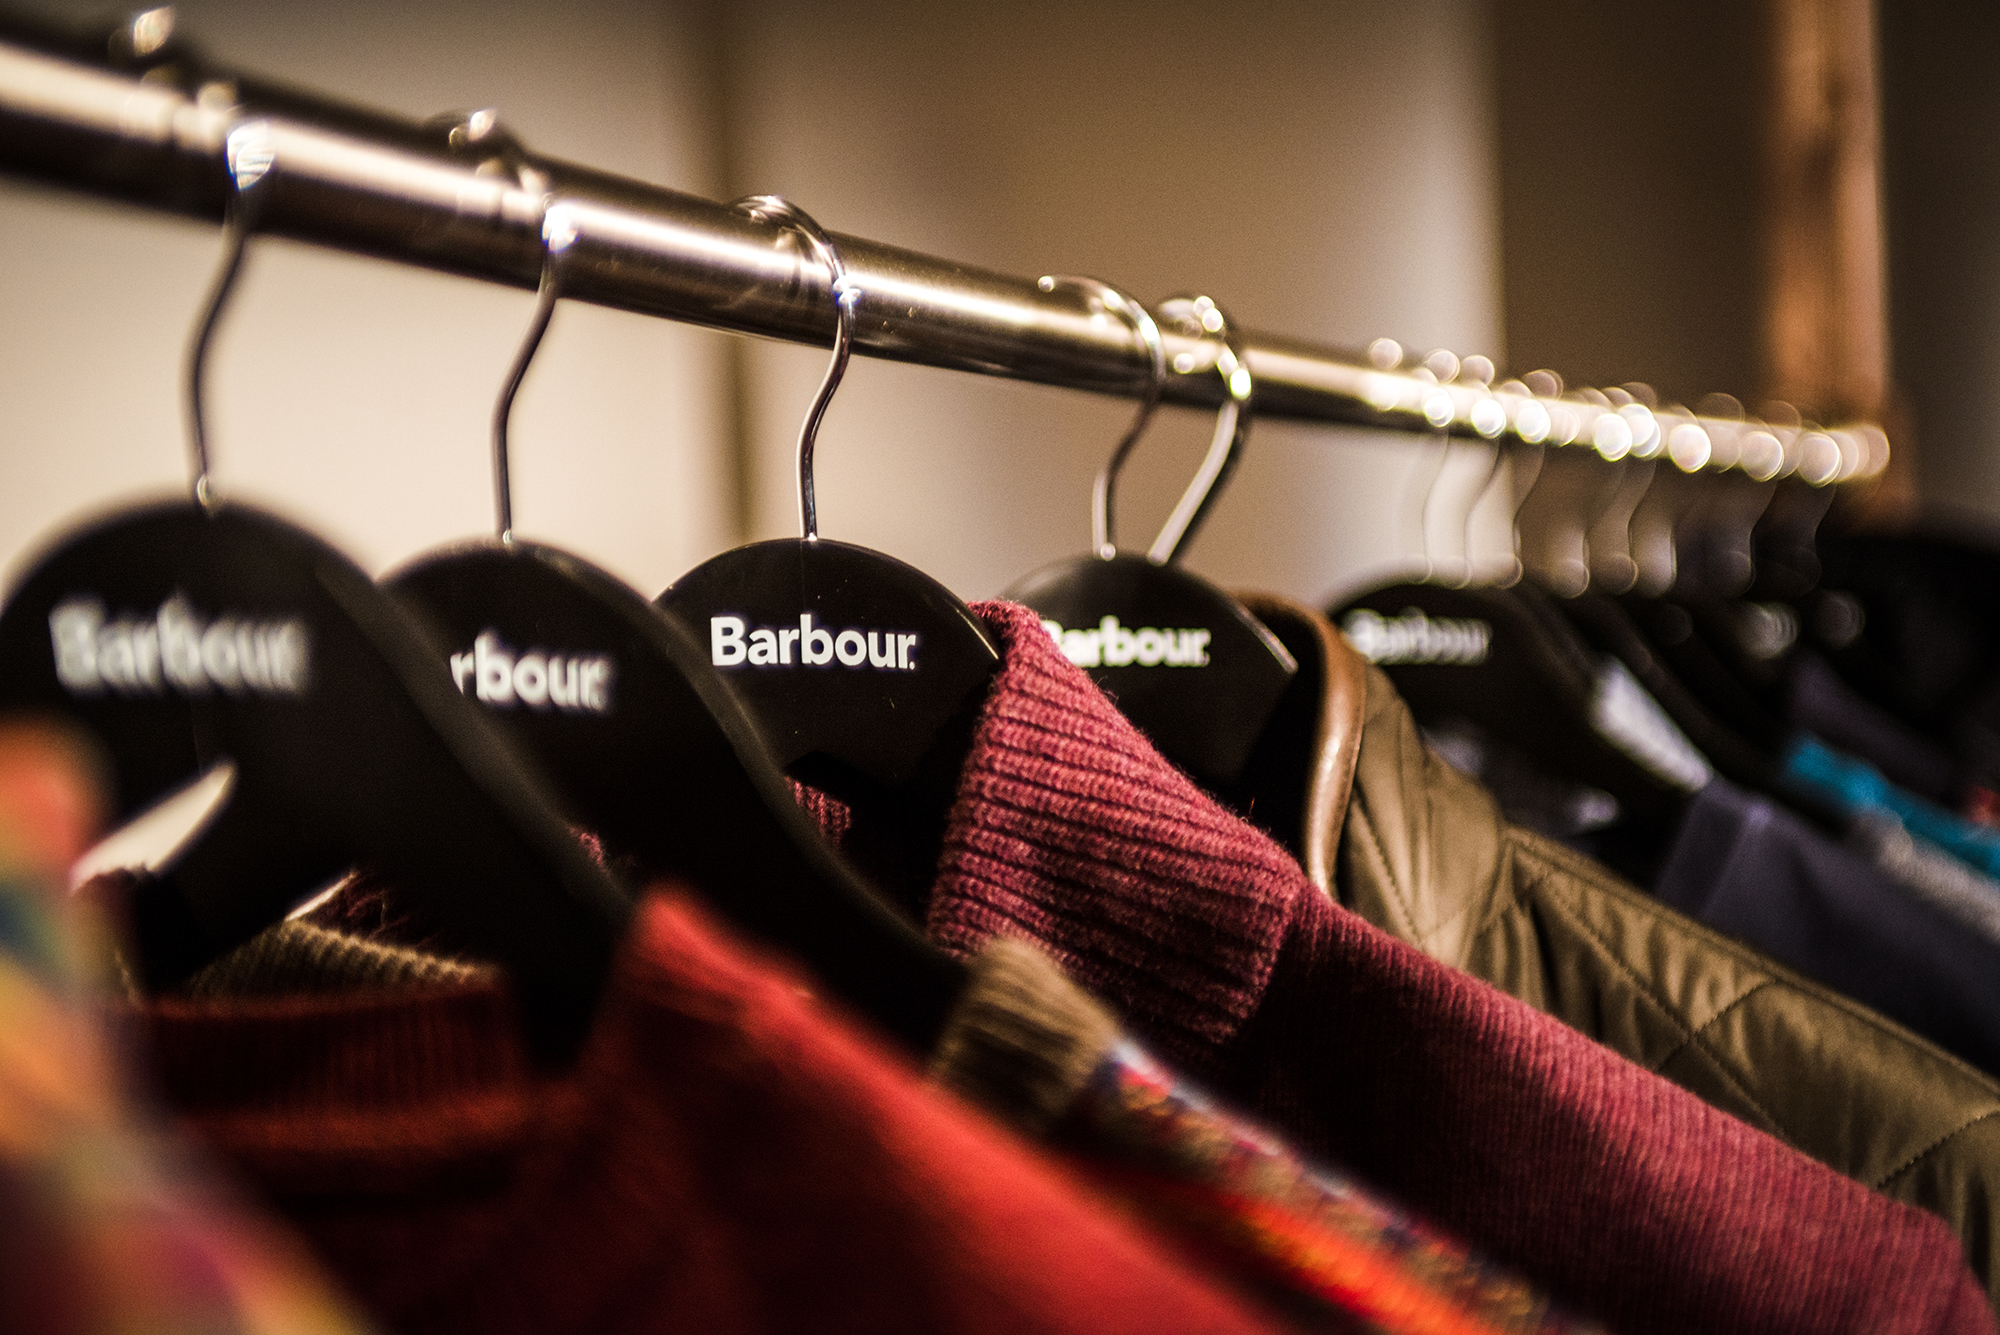 Barbour - LC:M AW15